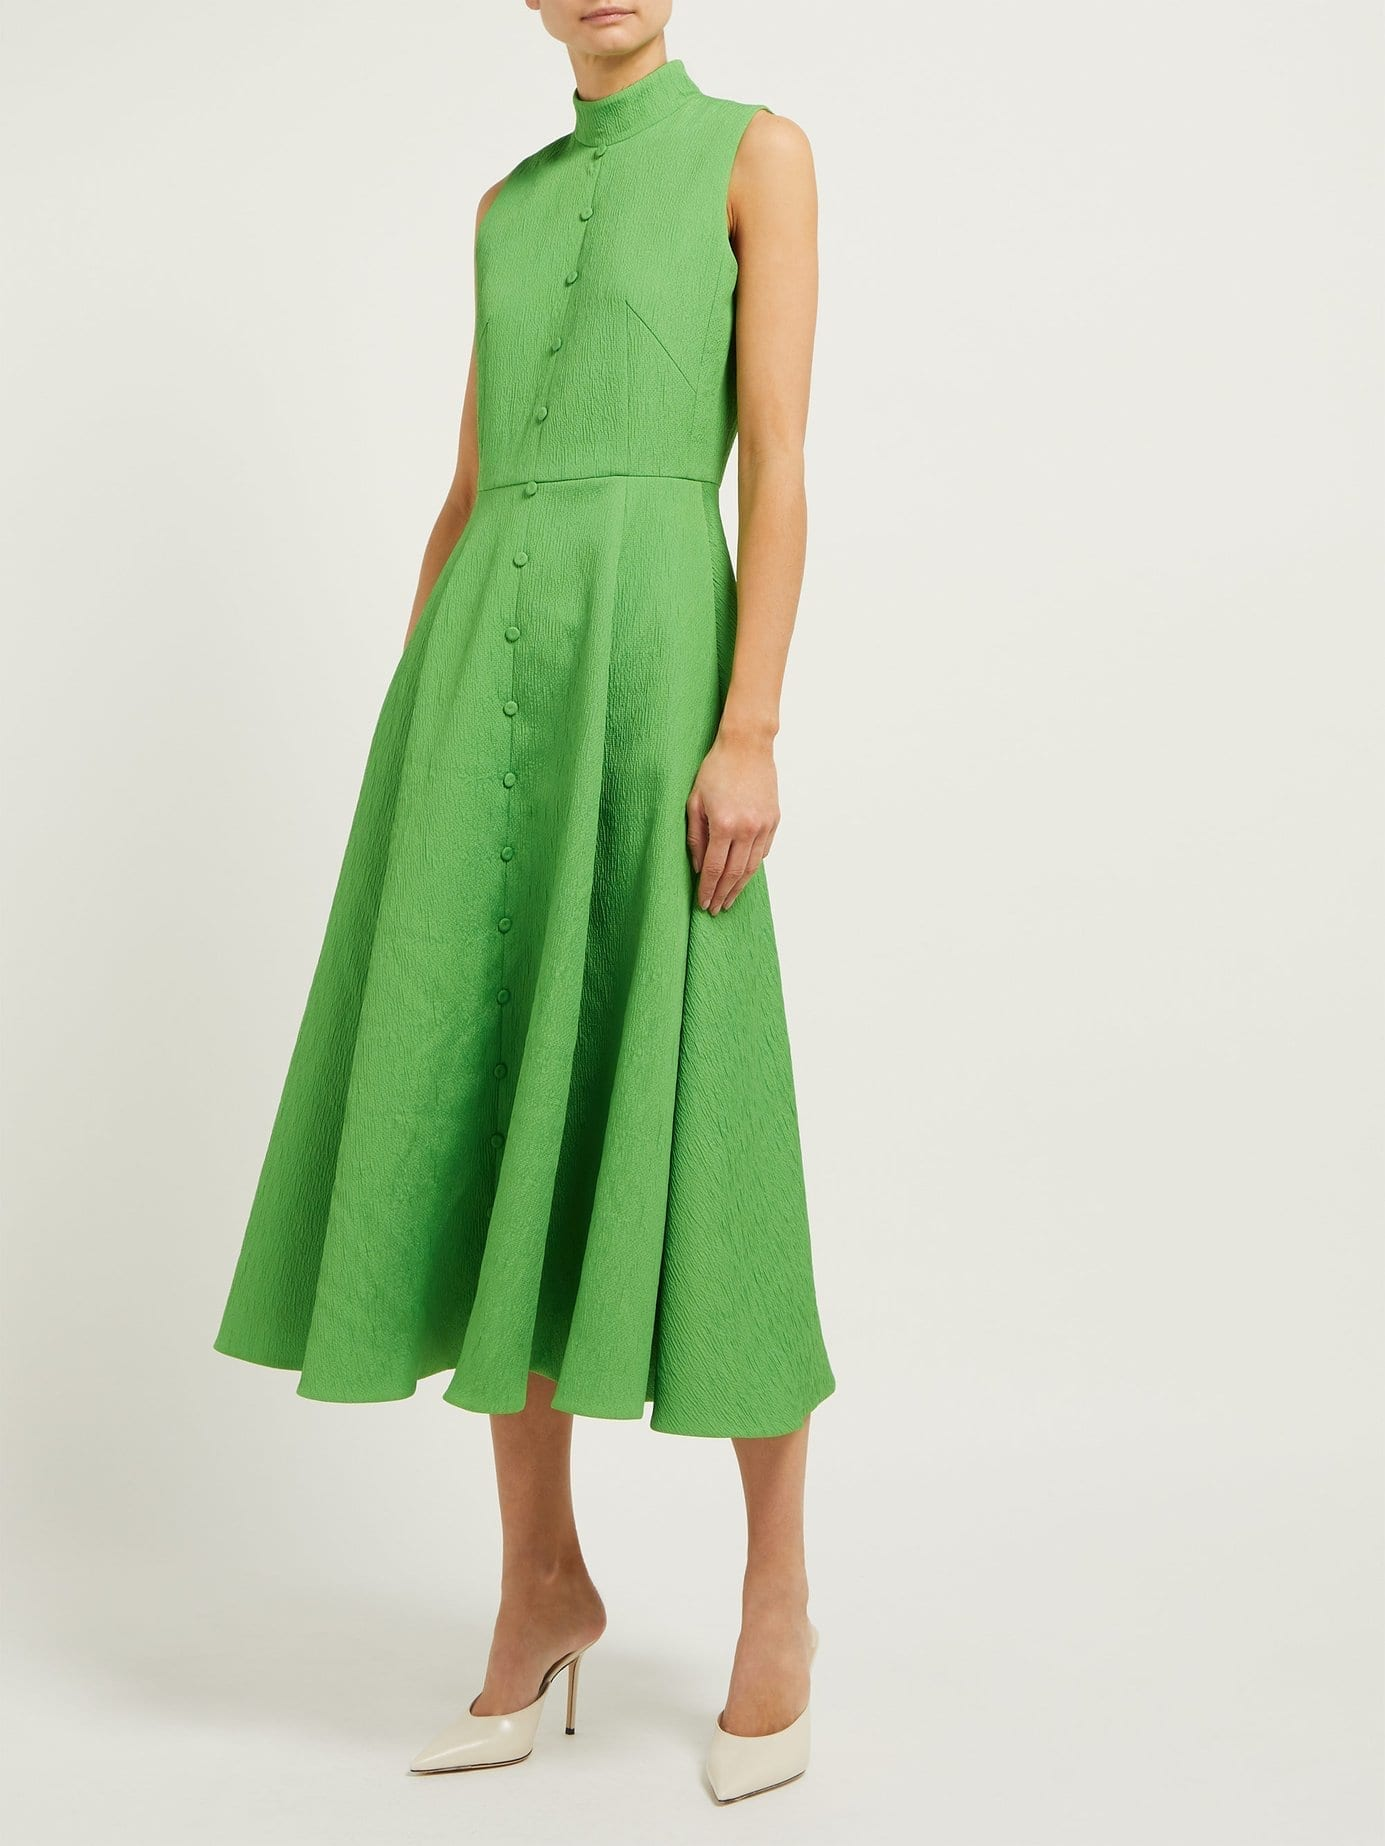 EMILIA WICKSTEAD Sheila Cloqué-Textured Crepe Midi Green Dress